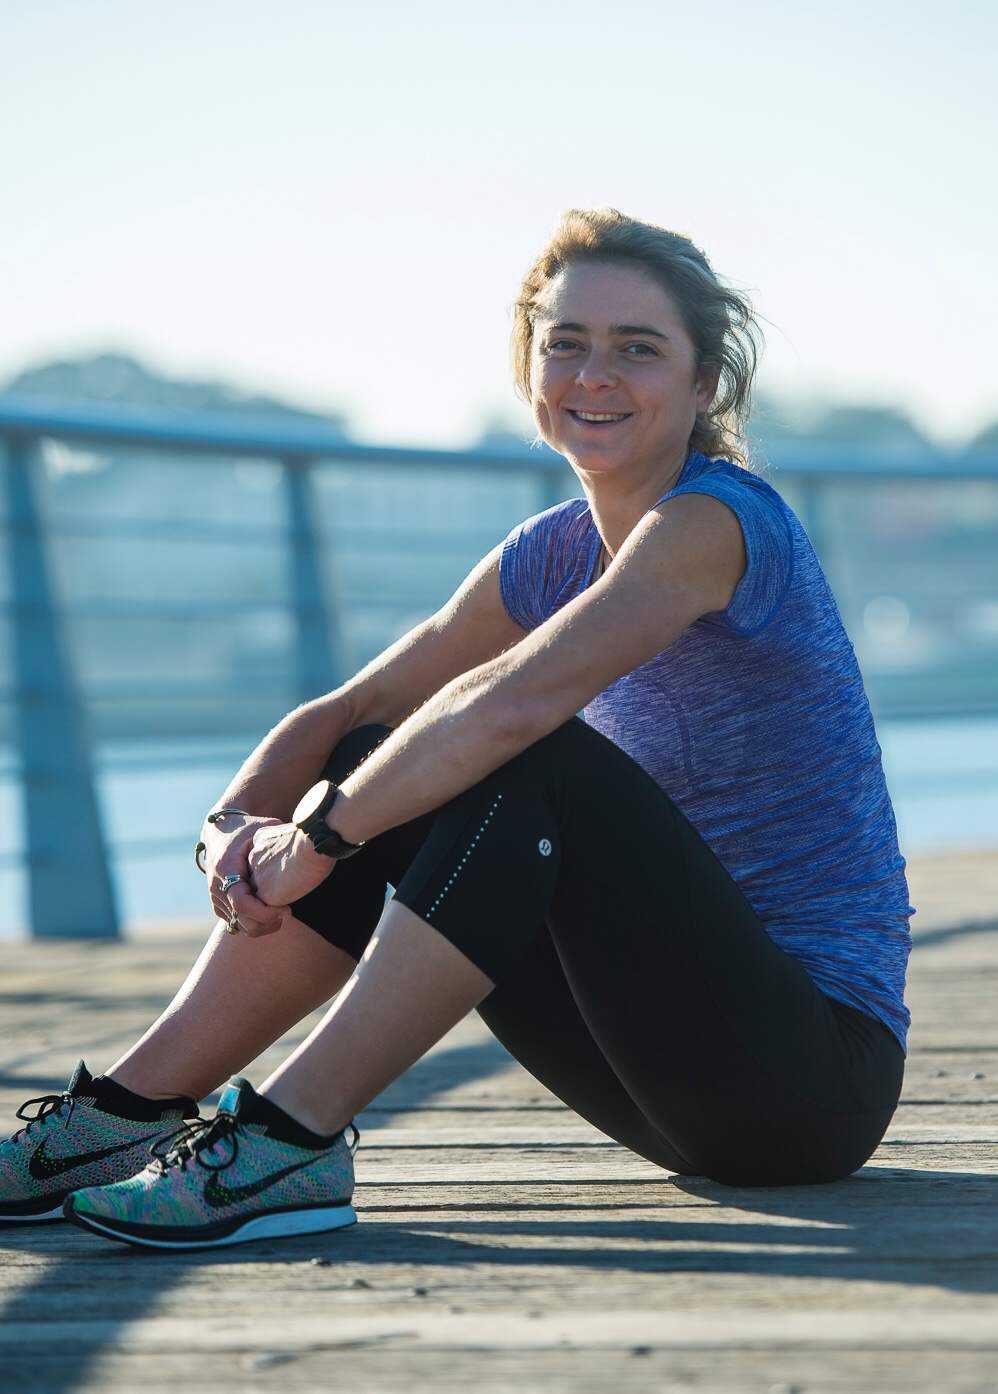 HANNAH LEONARD - SYDNEY ONE STEPHannah is a Kiwi living in Sydney. She is a believer in movement benefiting mental health - helping you set goals, achieve them and grow. Mental health is something close to Hannah's heart having known those affected and been affected herself. Hannah is passionate about connecting people through running.Hannah is an ultra marathoner and in constantly reminded just how much you can achieve when you start putting one foot in front of the other. Running has given her so many friendships that she can't wait to see others create amazing relationships with themselves and others.Hannah is a leader at the Sydney One Step community.